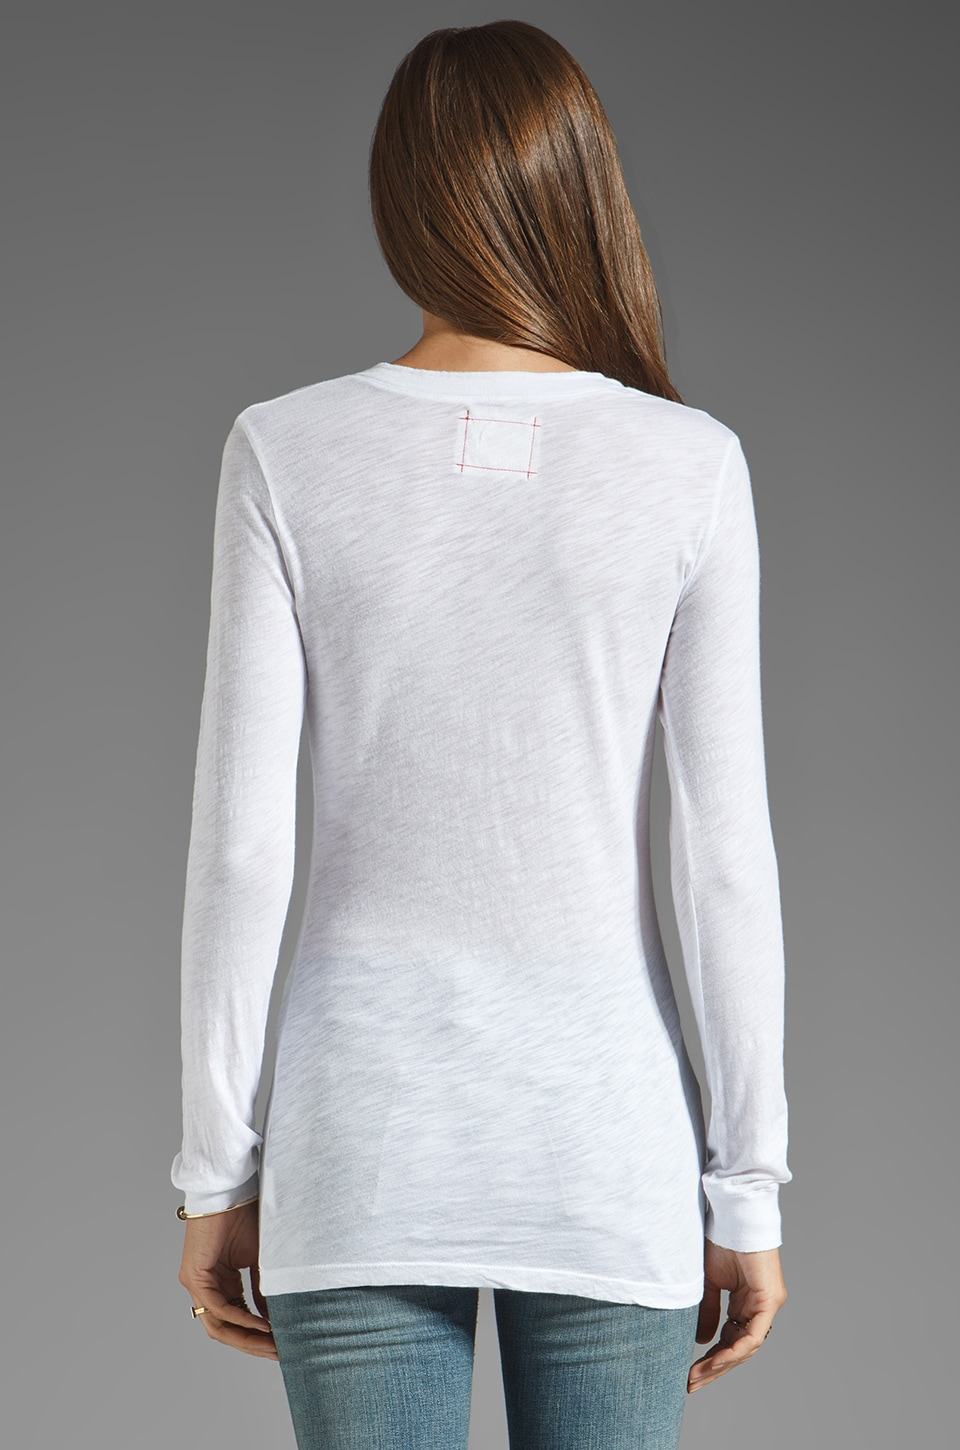 Daftbird Detailed Henley Long Sleeve Tee in White